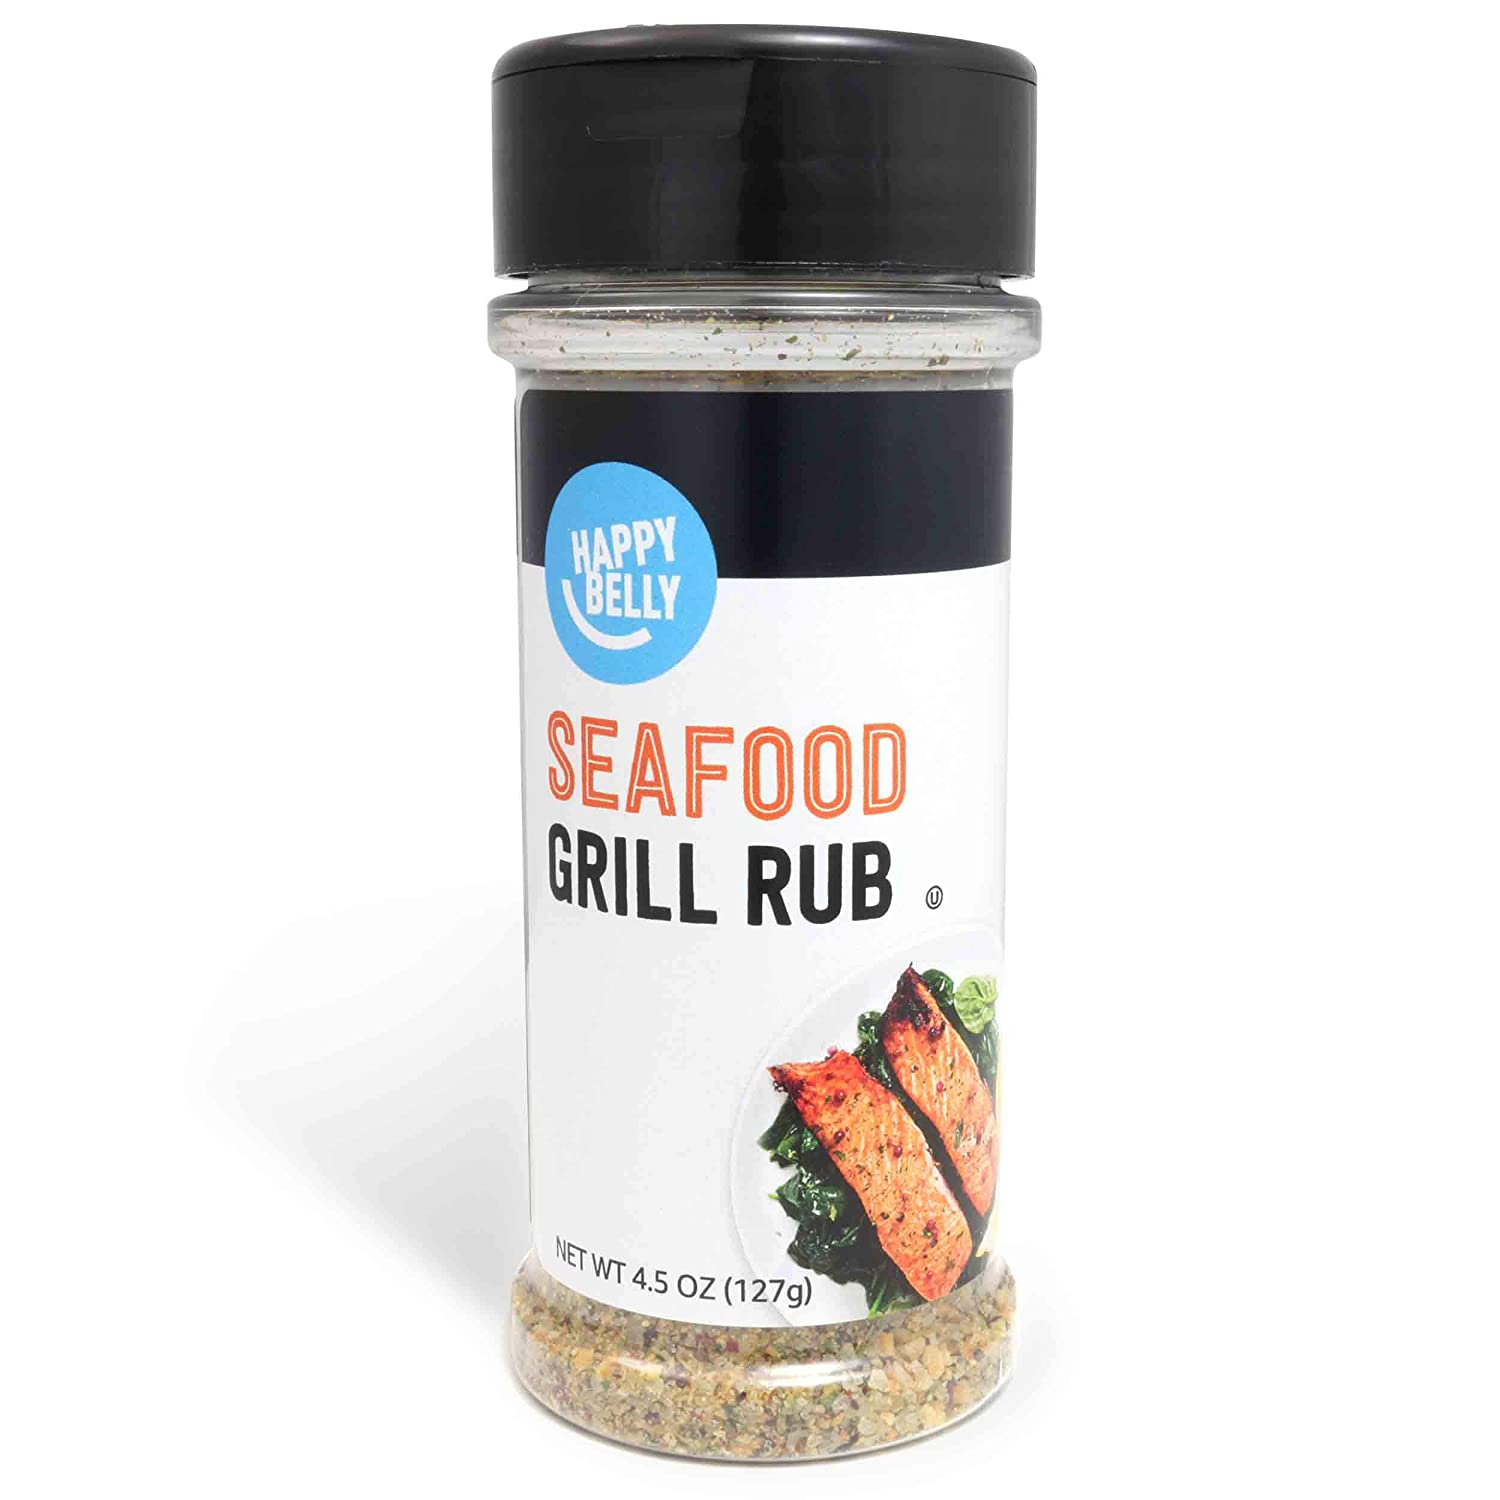 Amazon Brand - Happy Belly Seafood Grill Rub, 4.5 Ounces